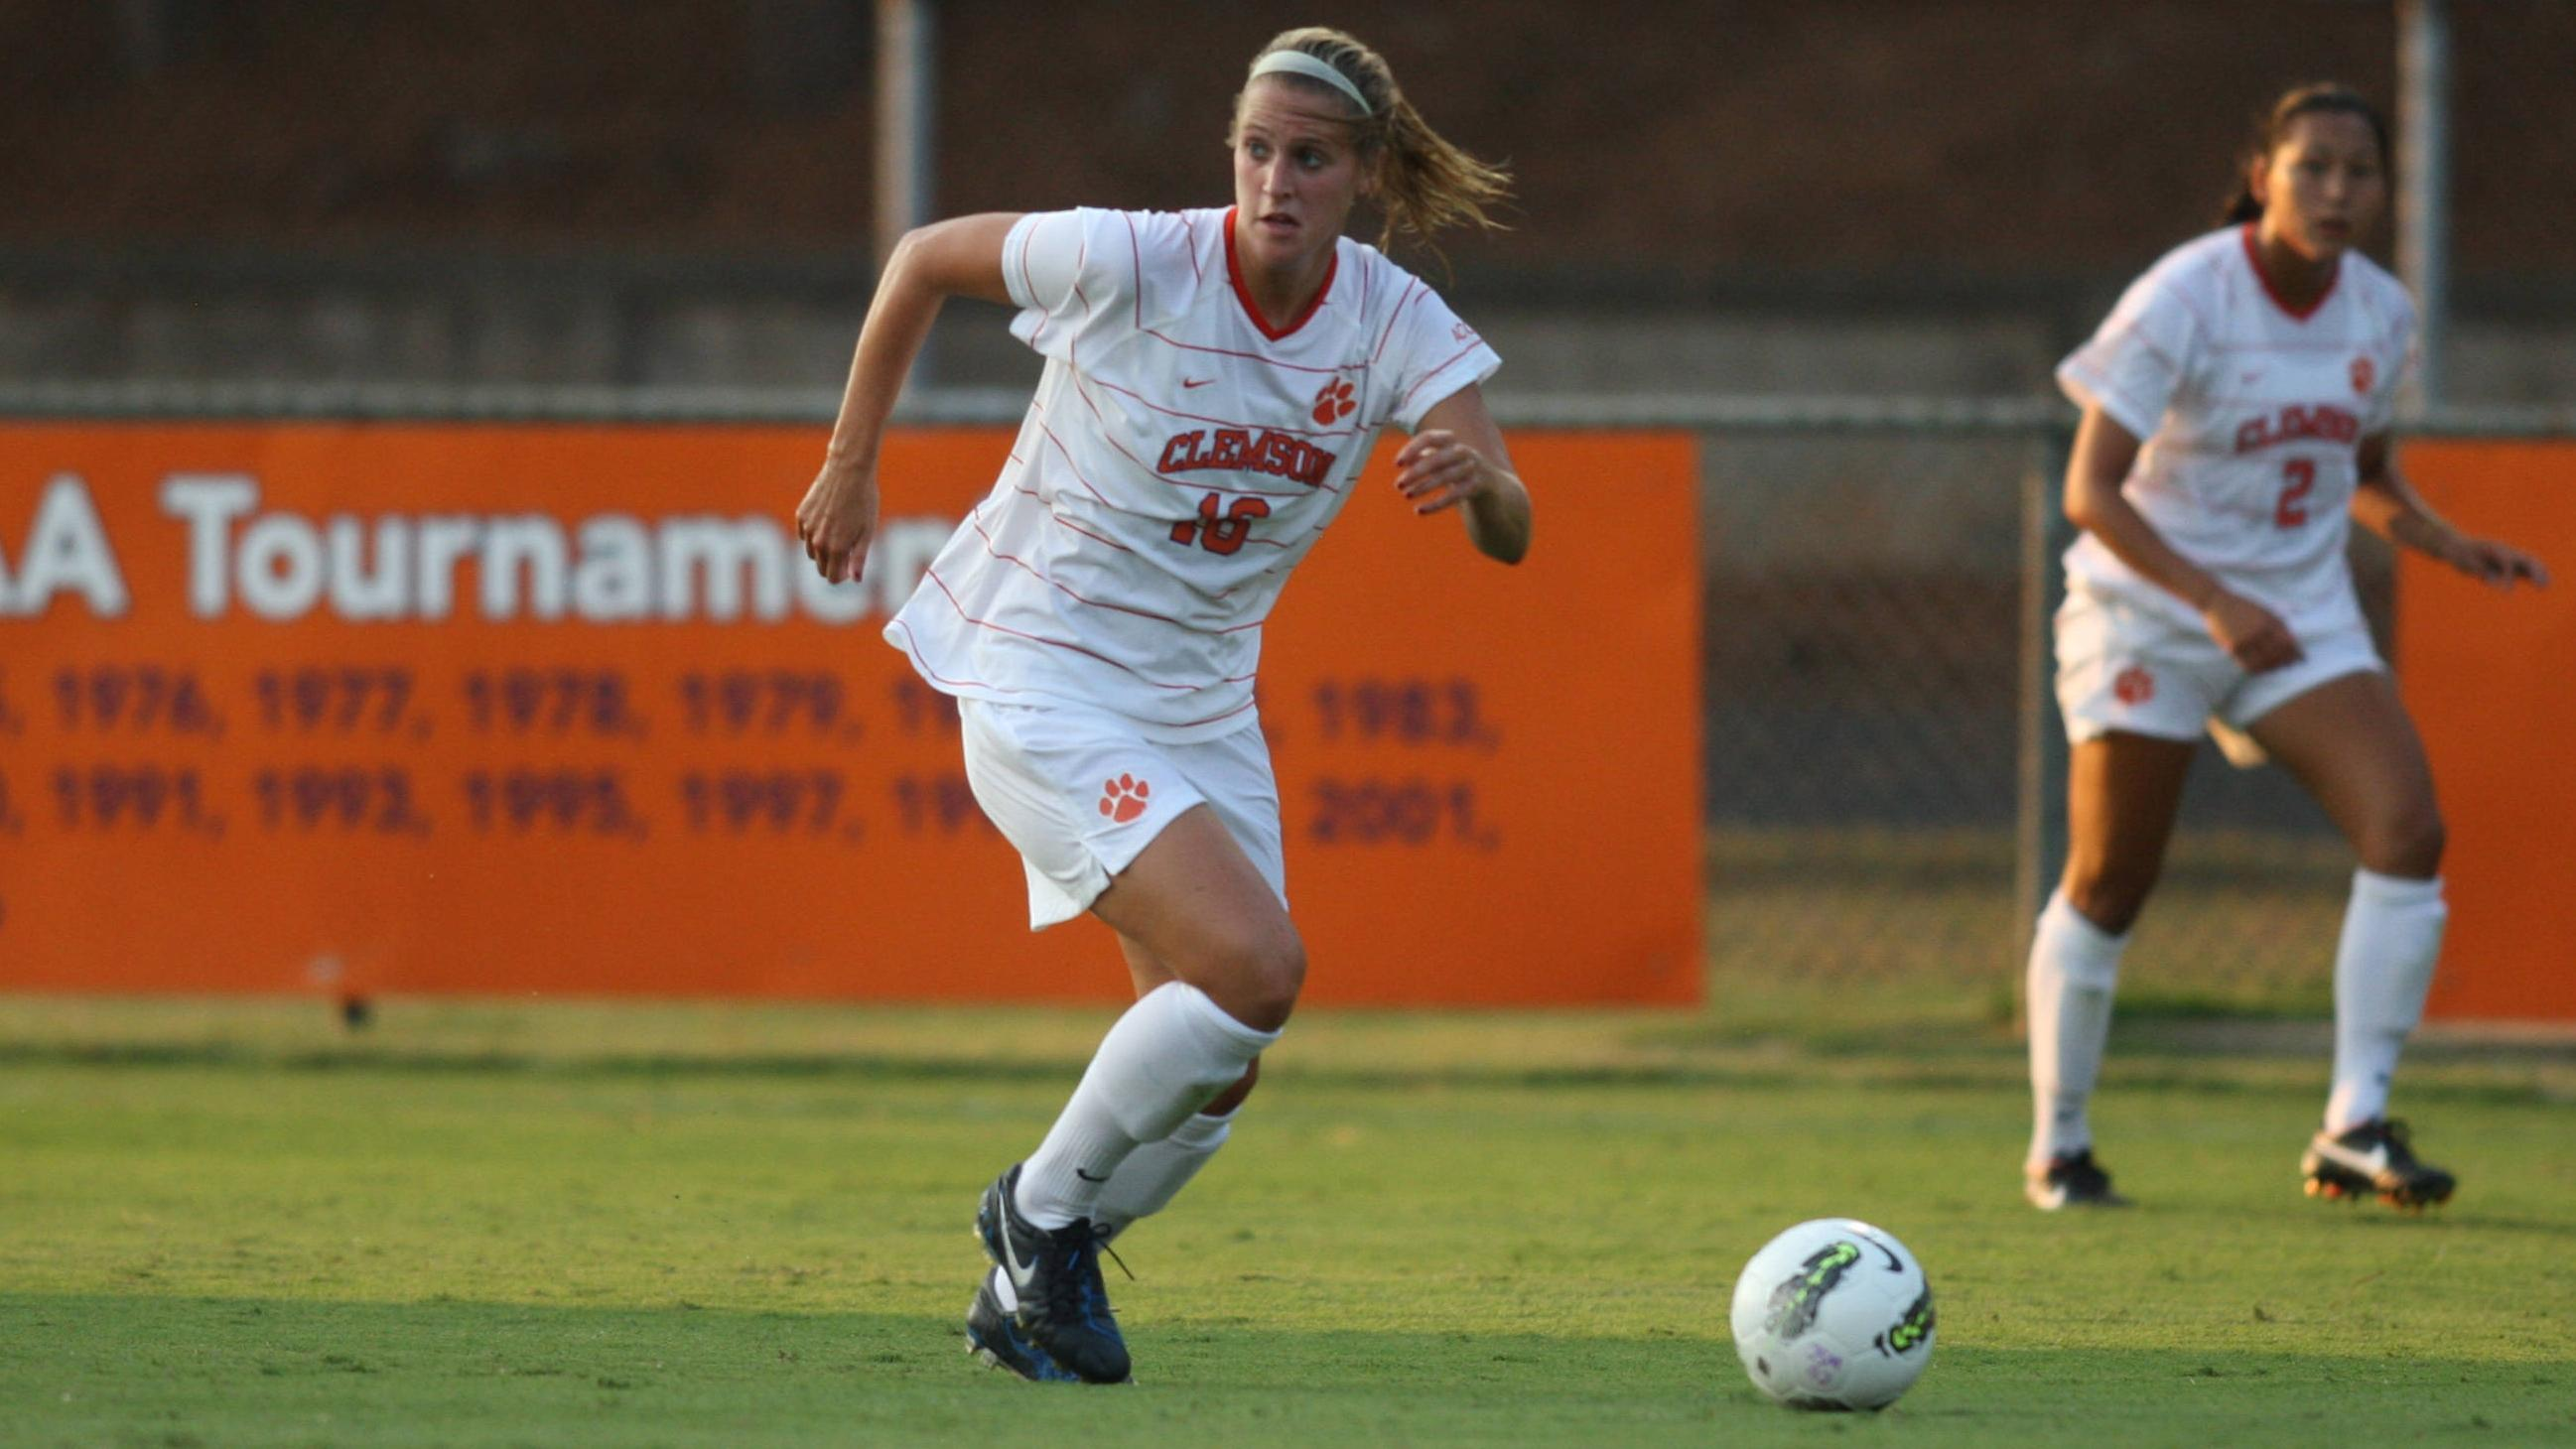 Women's Soccer Spotlight: Heather Marik